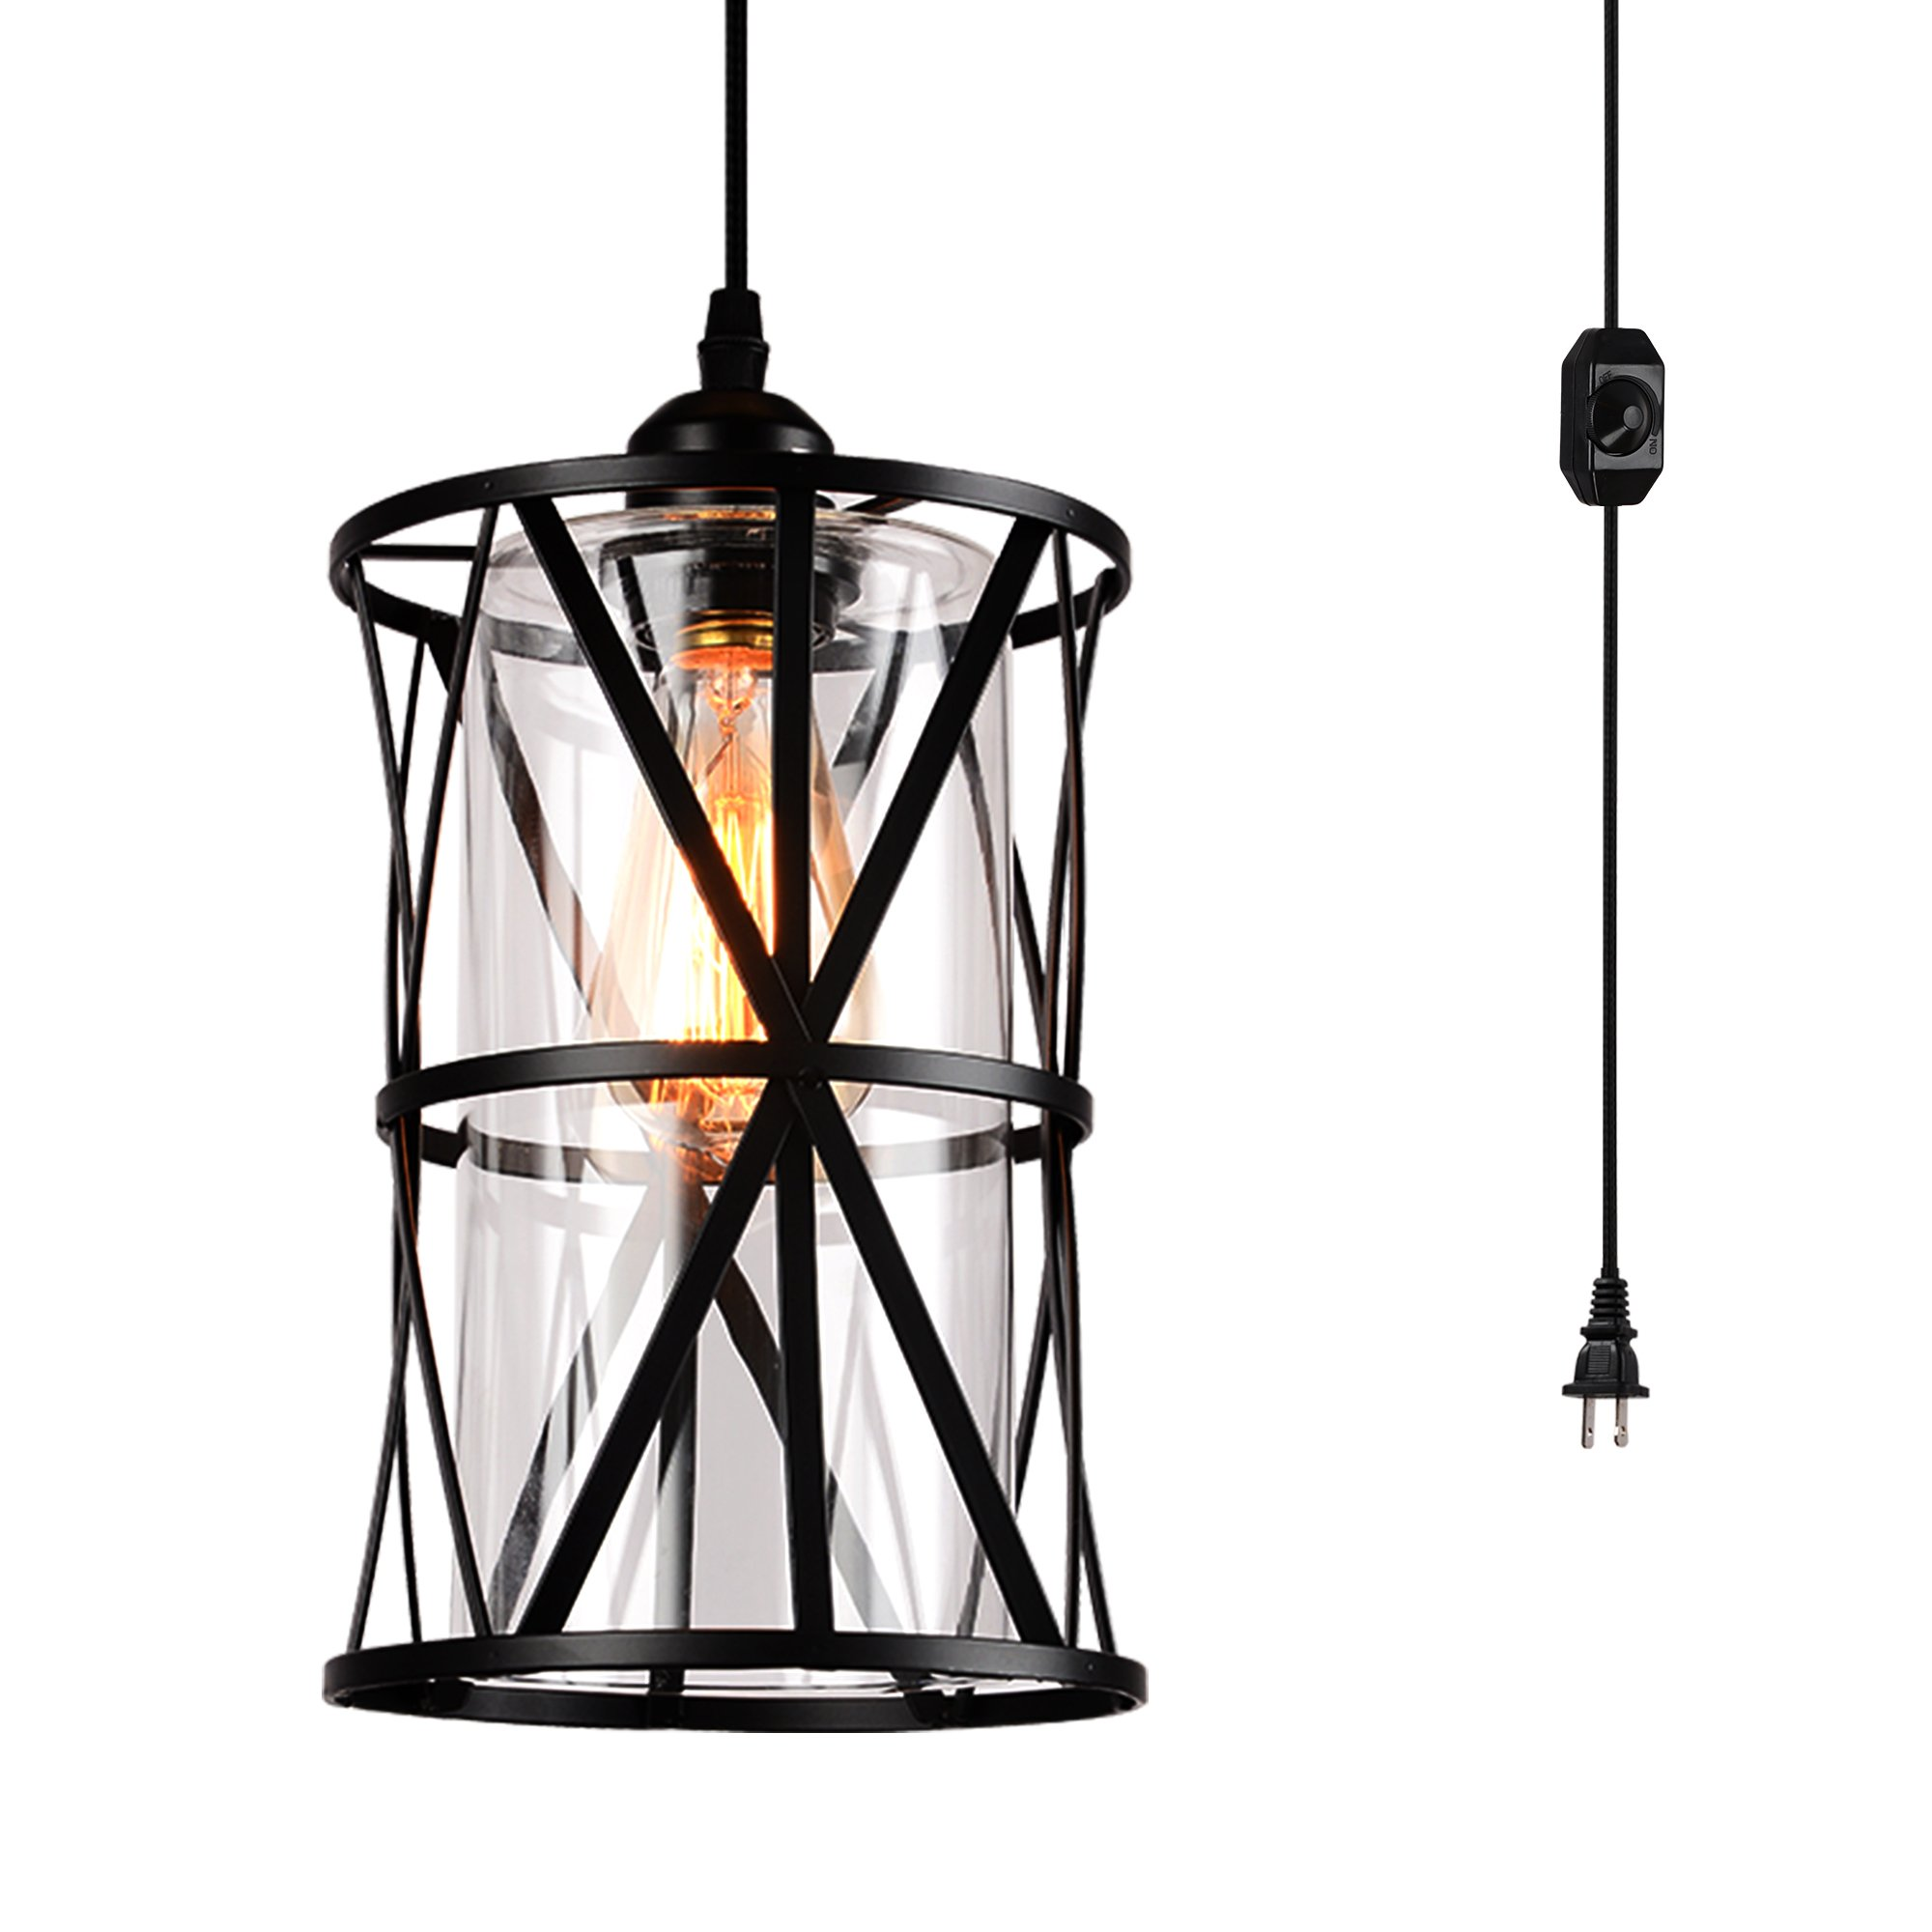 HMVPL Swag Lights with Plug in Cord and On/Off Dimmer Switch, New Transitional Hanging Pendant Lamps with Clear Glass Lampshade for Dining Room, Bed Room by HMVPL